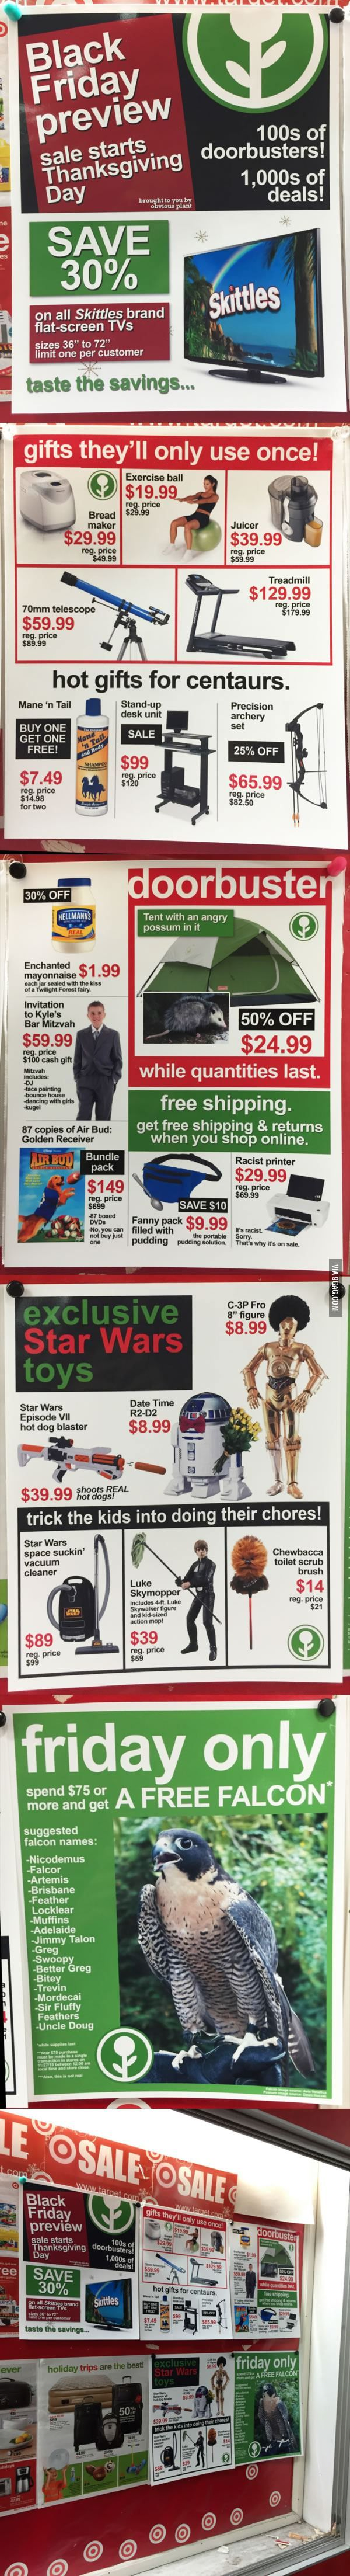 This Guy Added Fake Black Friday Deals To This Store's Weekly In-Store Flyer